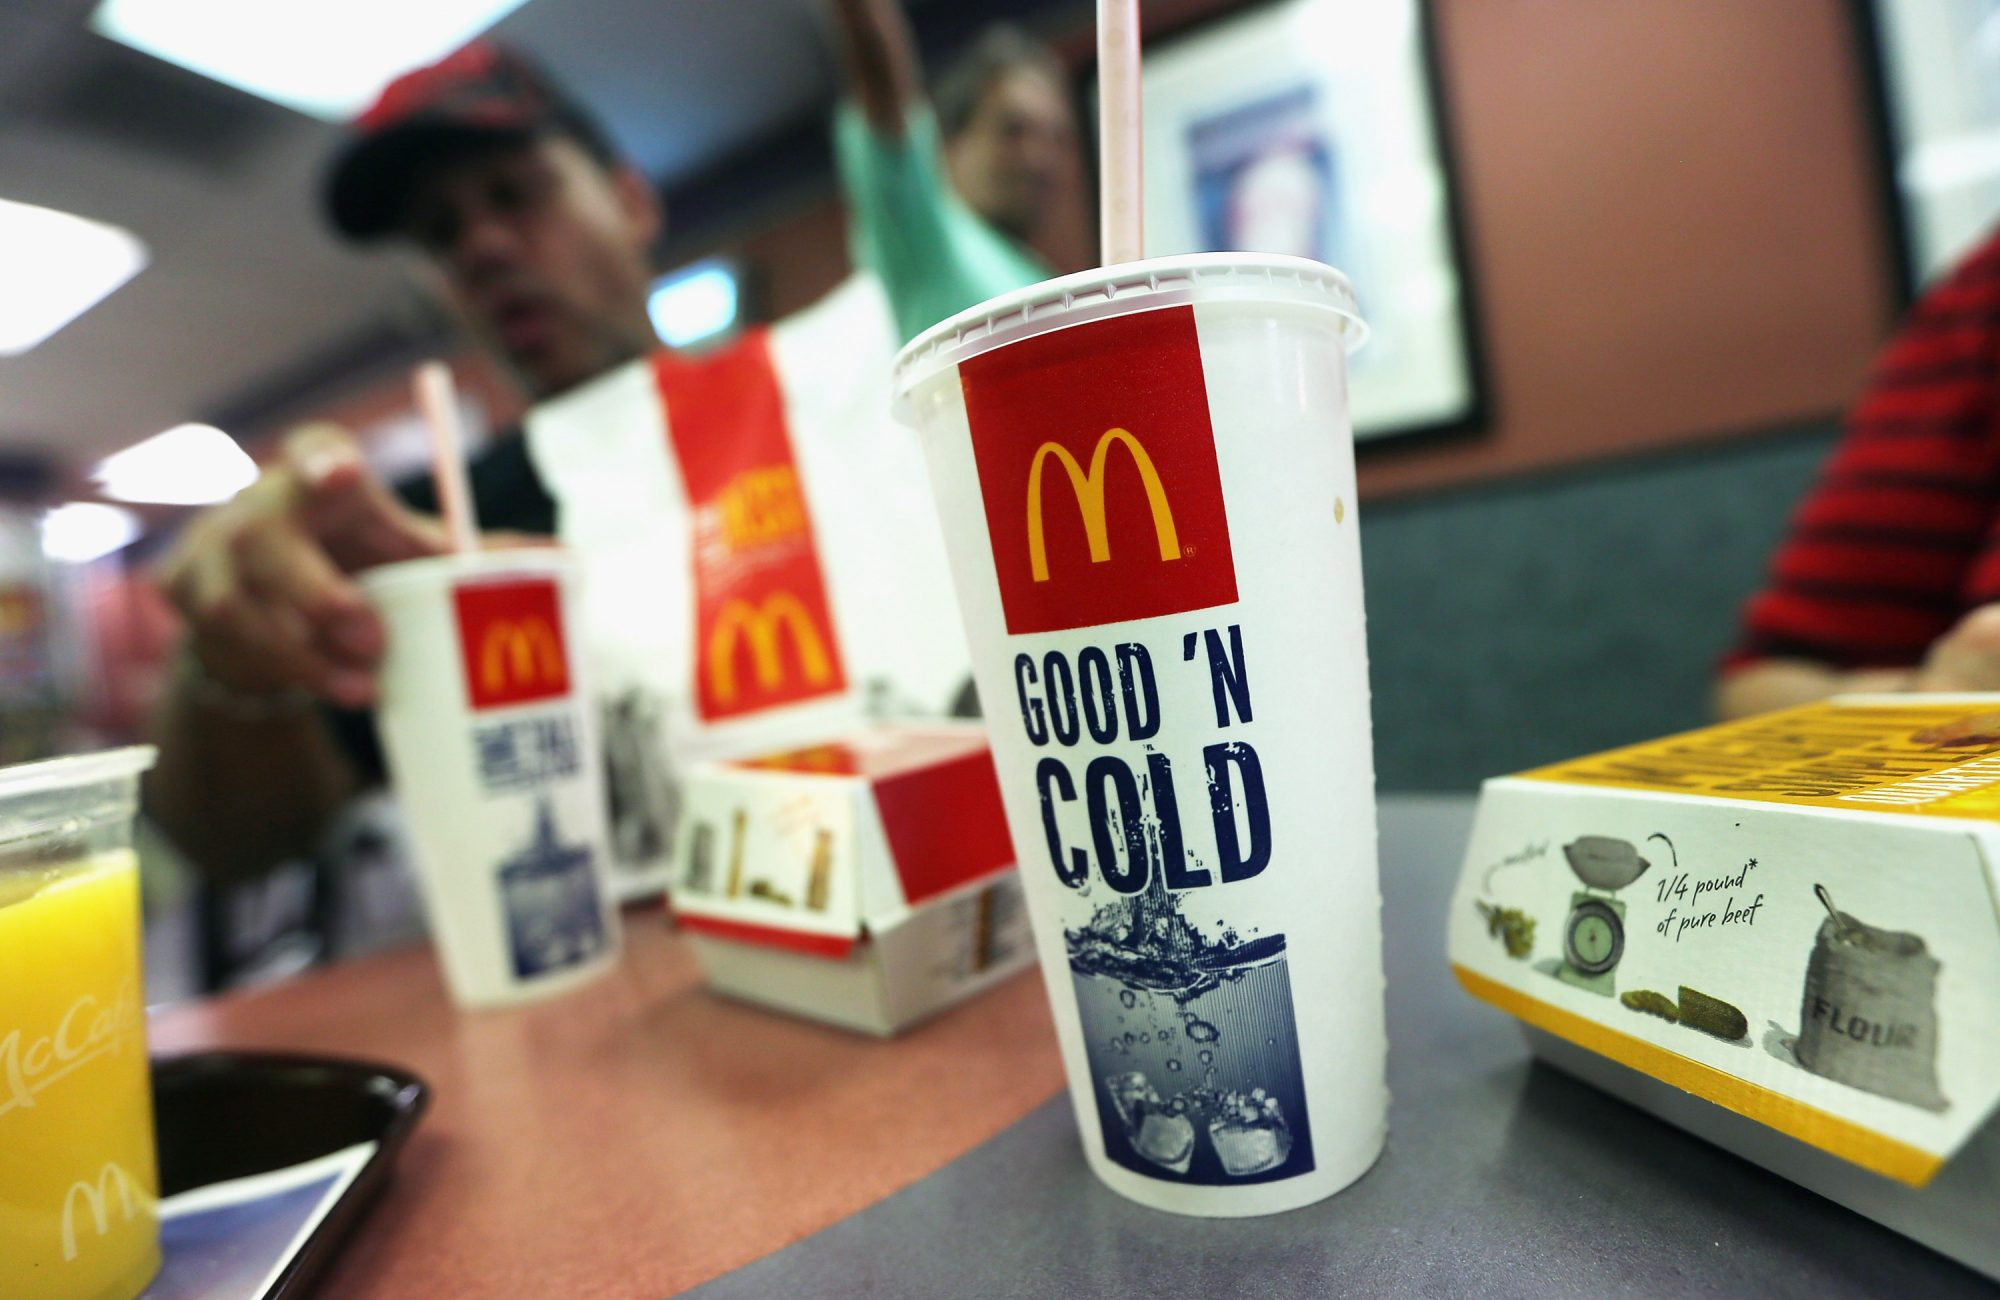 WATCH: This Is Why McDonald's Coke Tastes Better Than All the Others